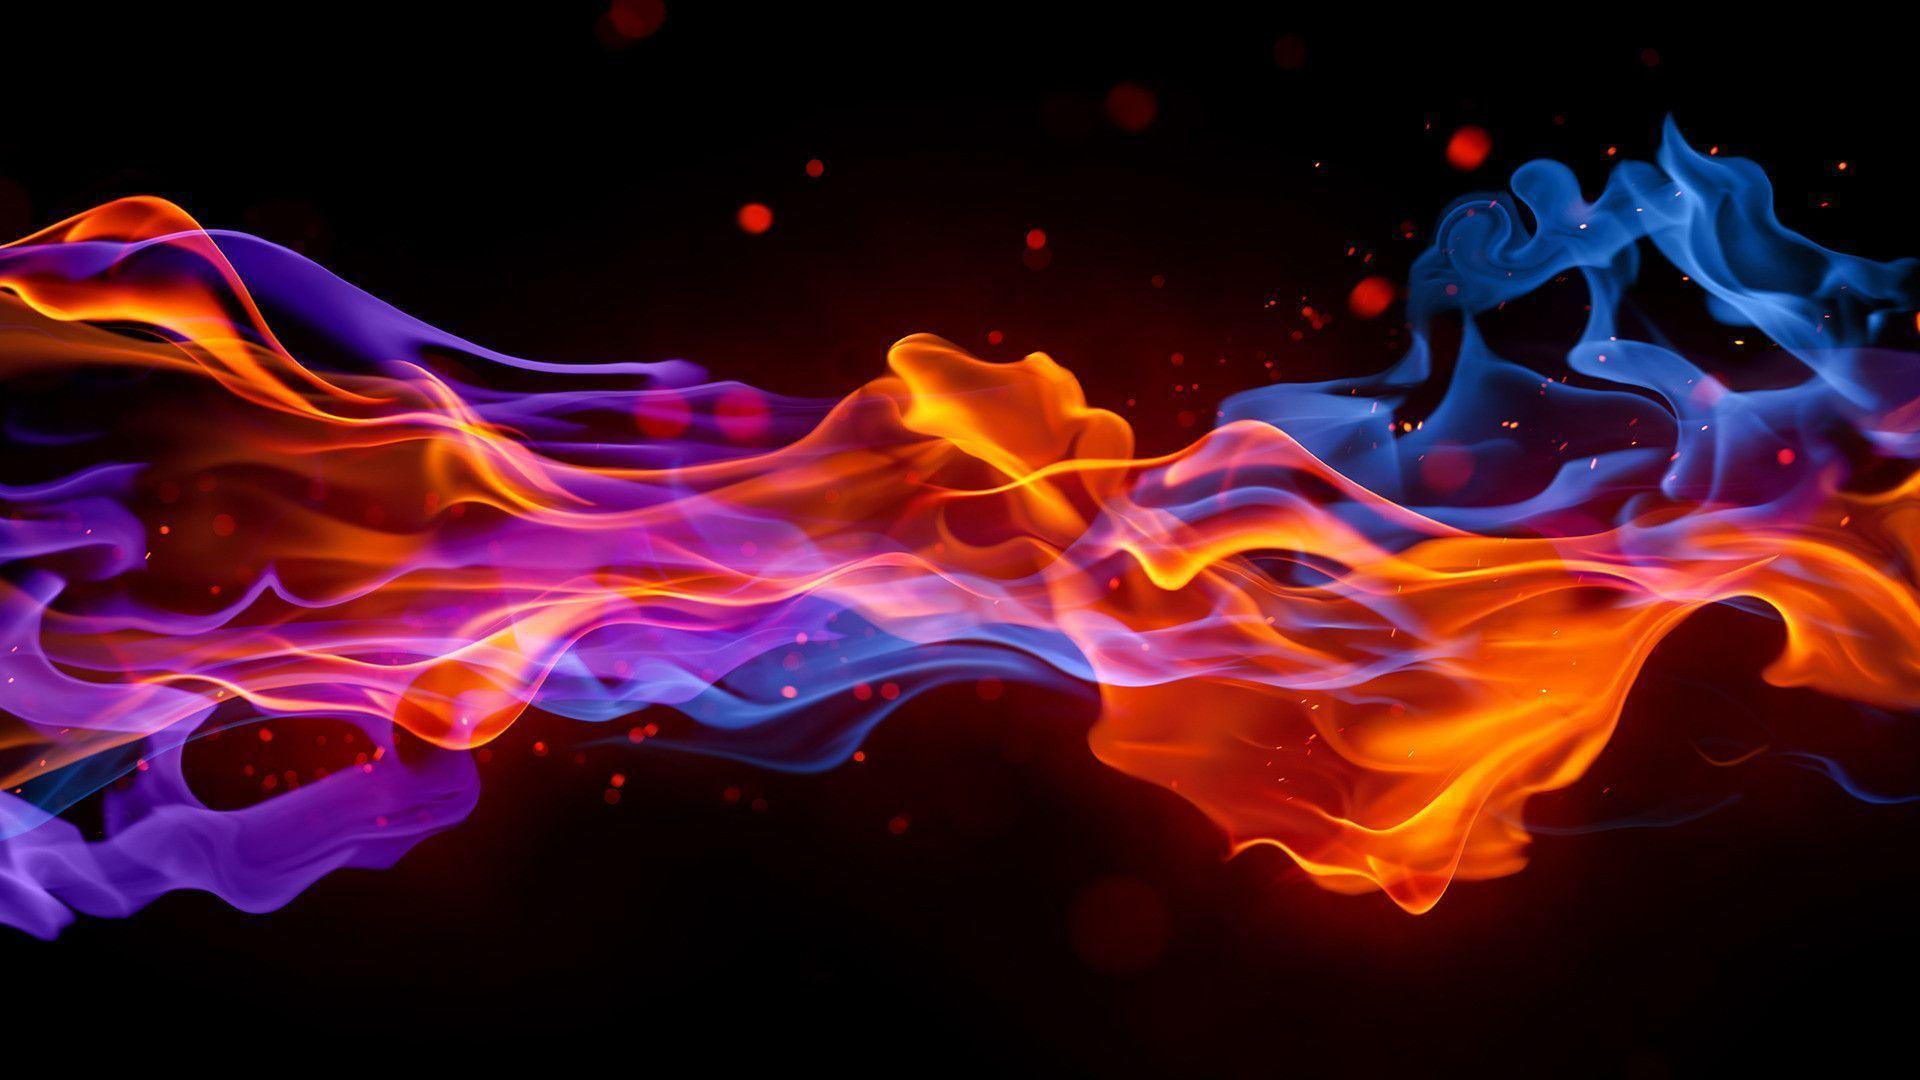 flaming fireplace wallpaper - photo #23